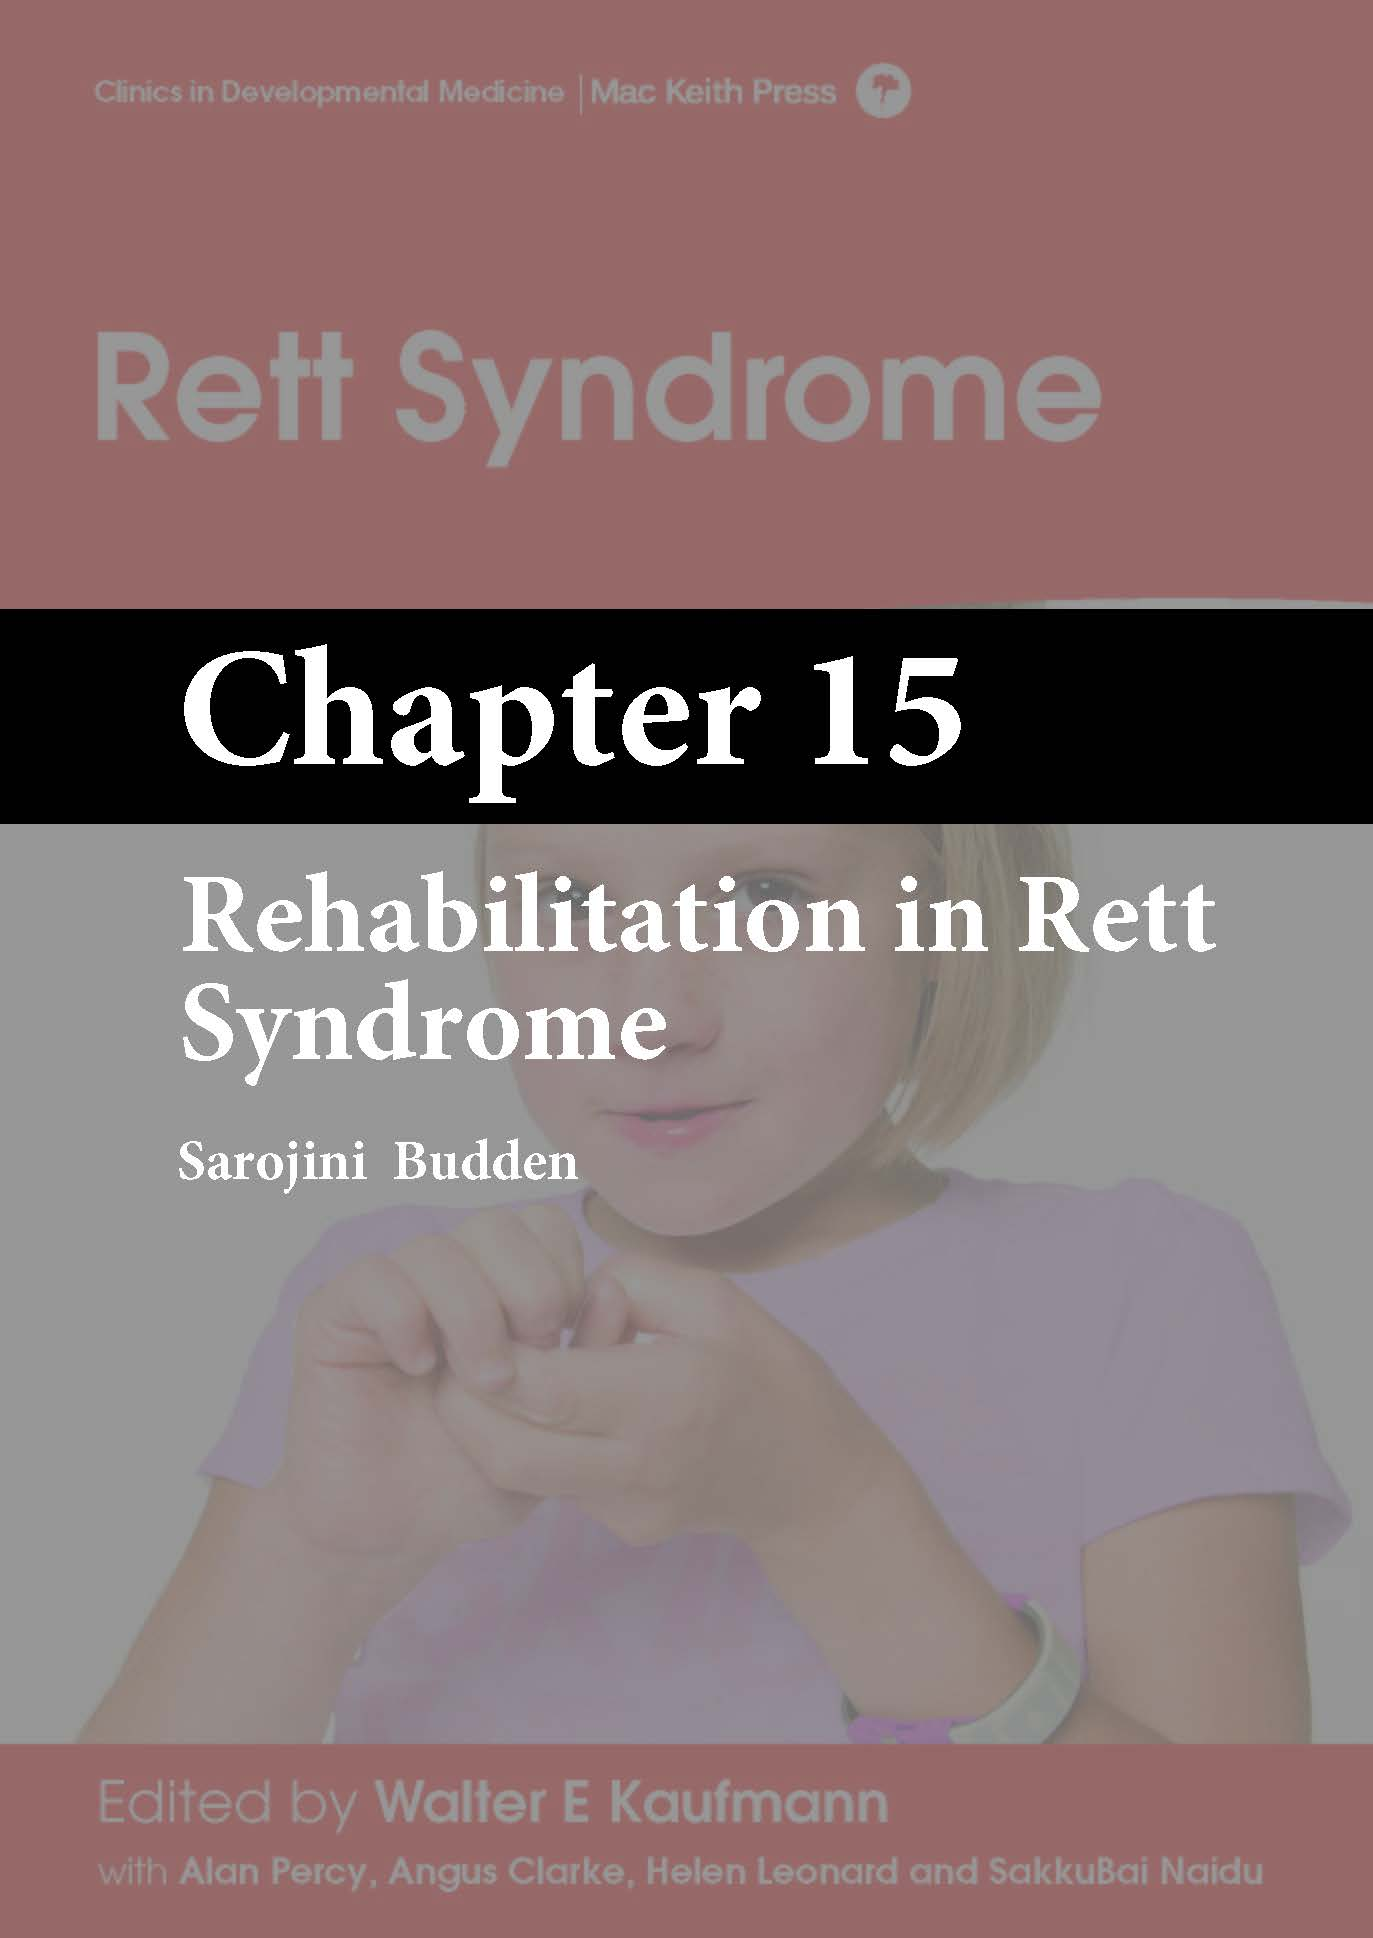 Rett Syndrome, Kaufmann, Chapter 15 cover